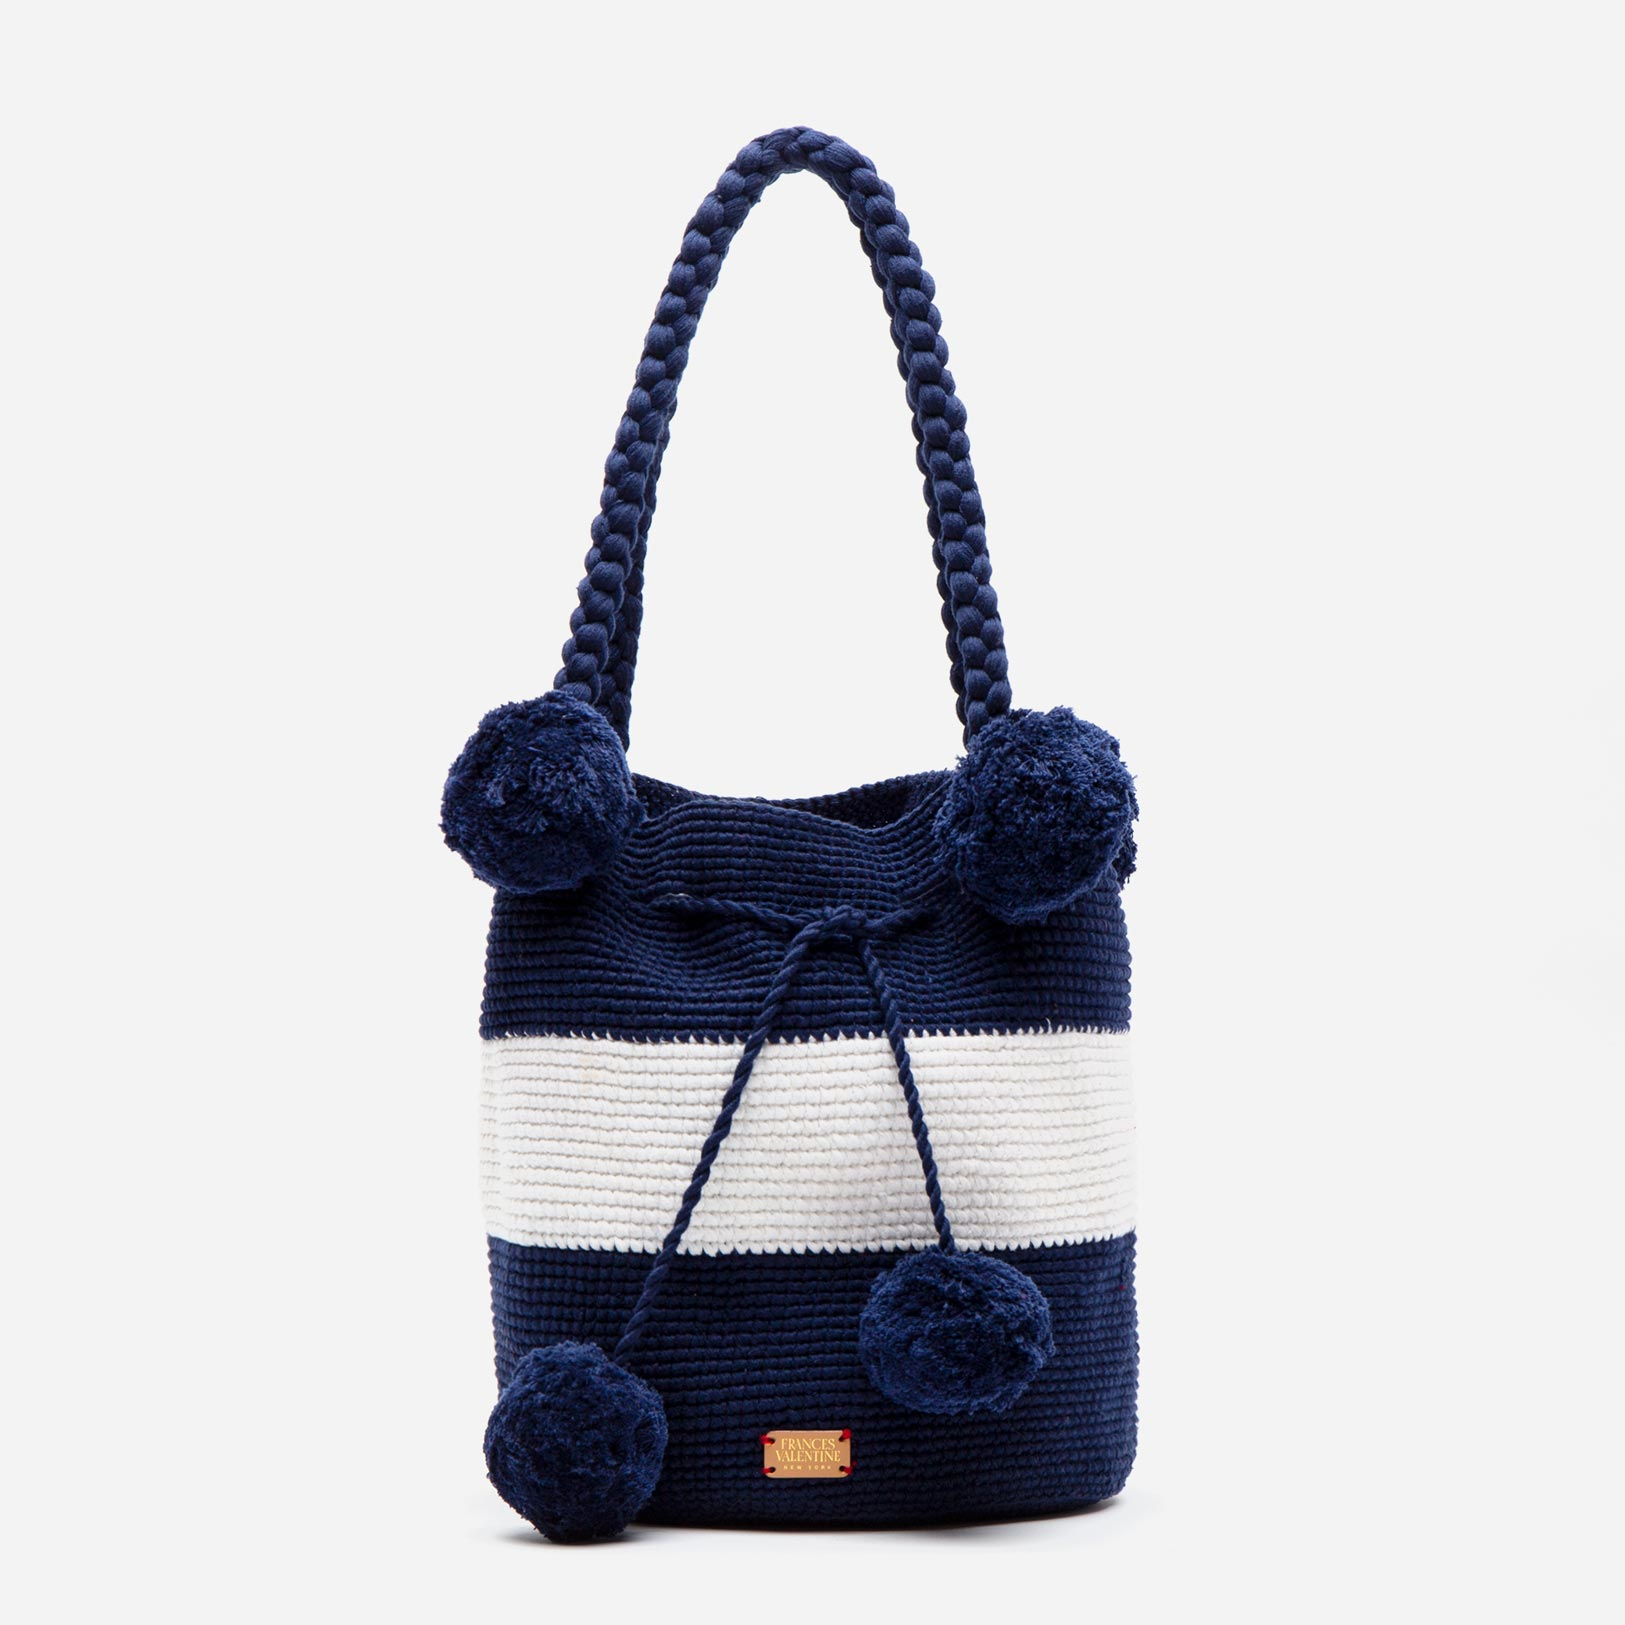 Haley Woven Bucket Navy White - Frances Valentine